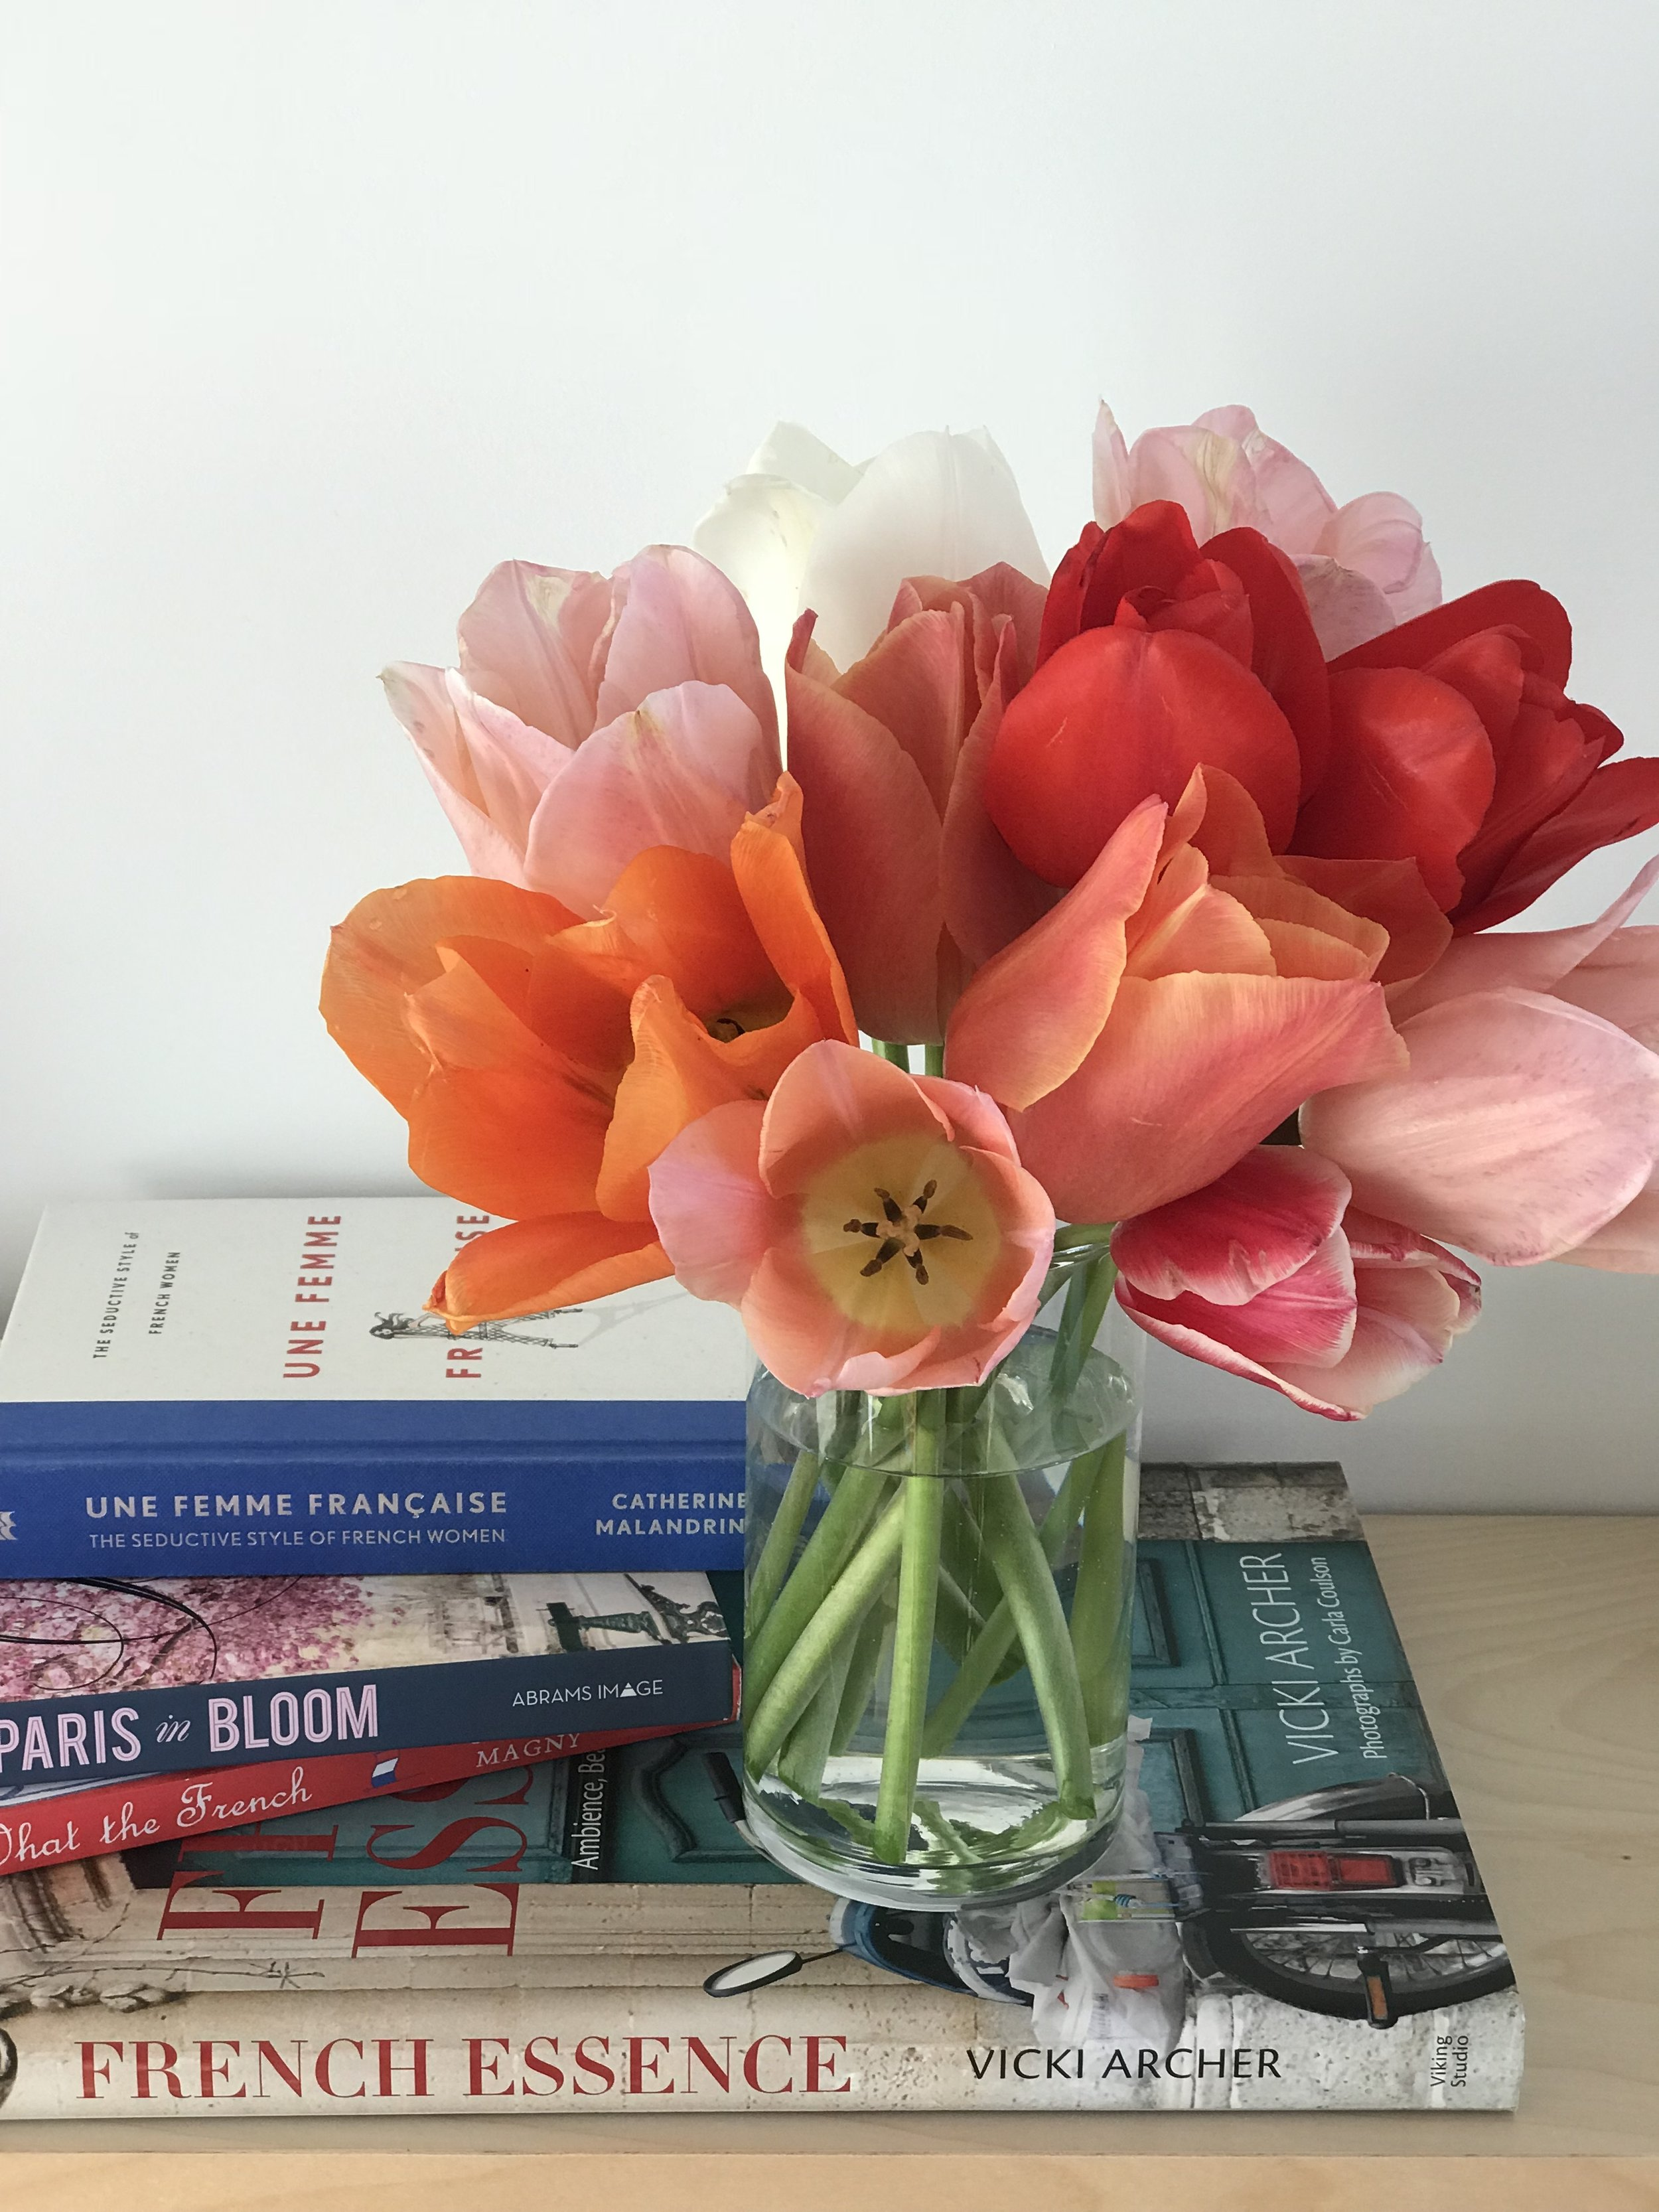 Stolen tulips from a french public garden ... shhh!